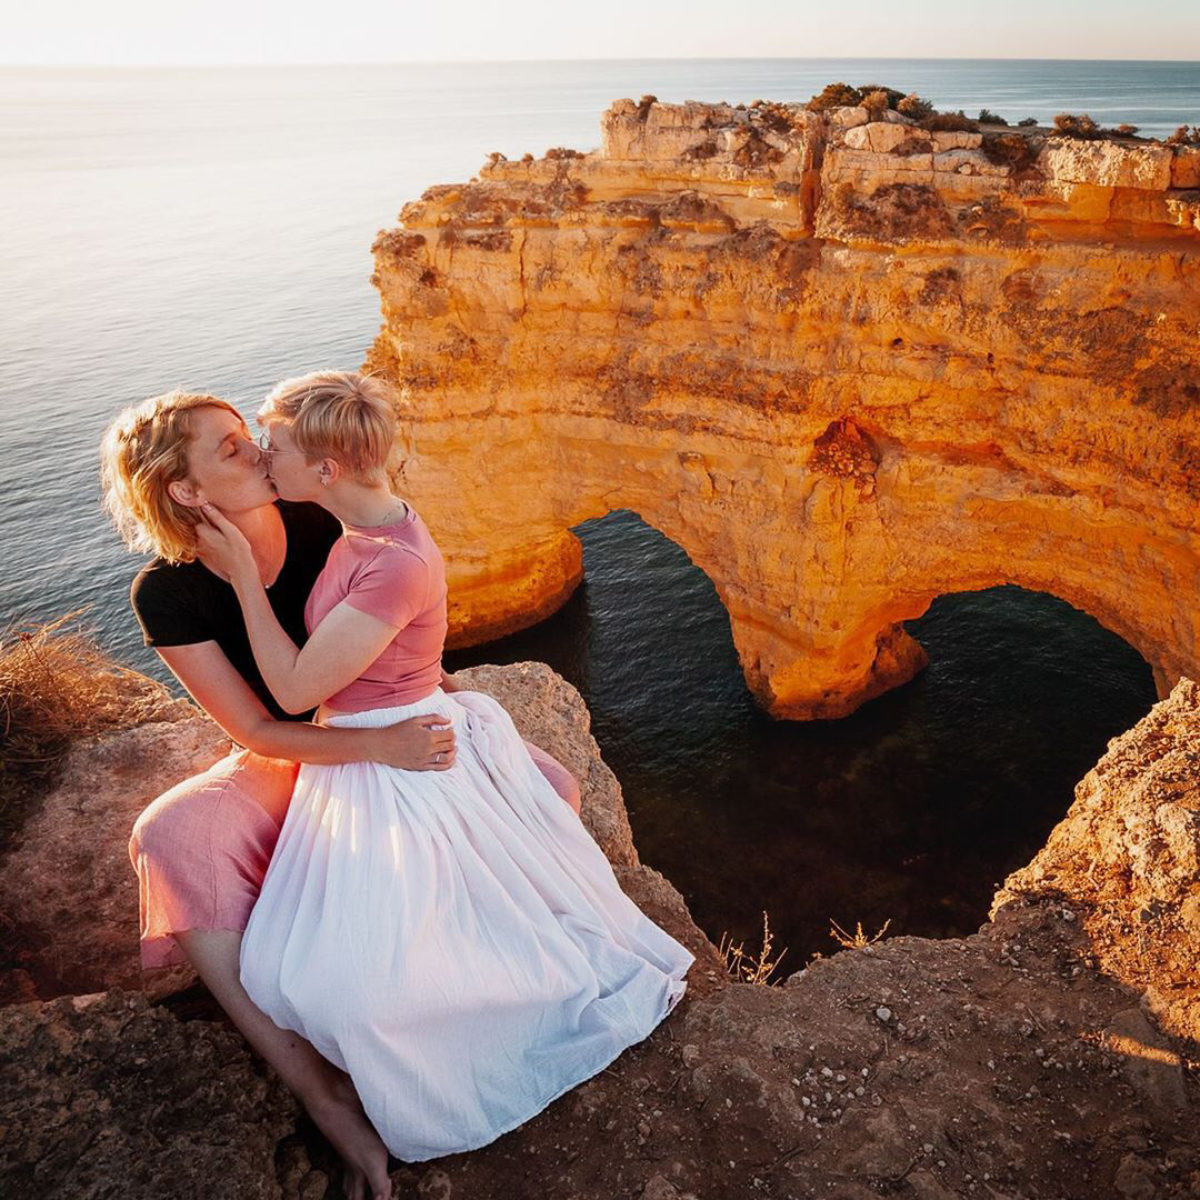 Couple of girls kissing in Lagos, Portugal